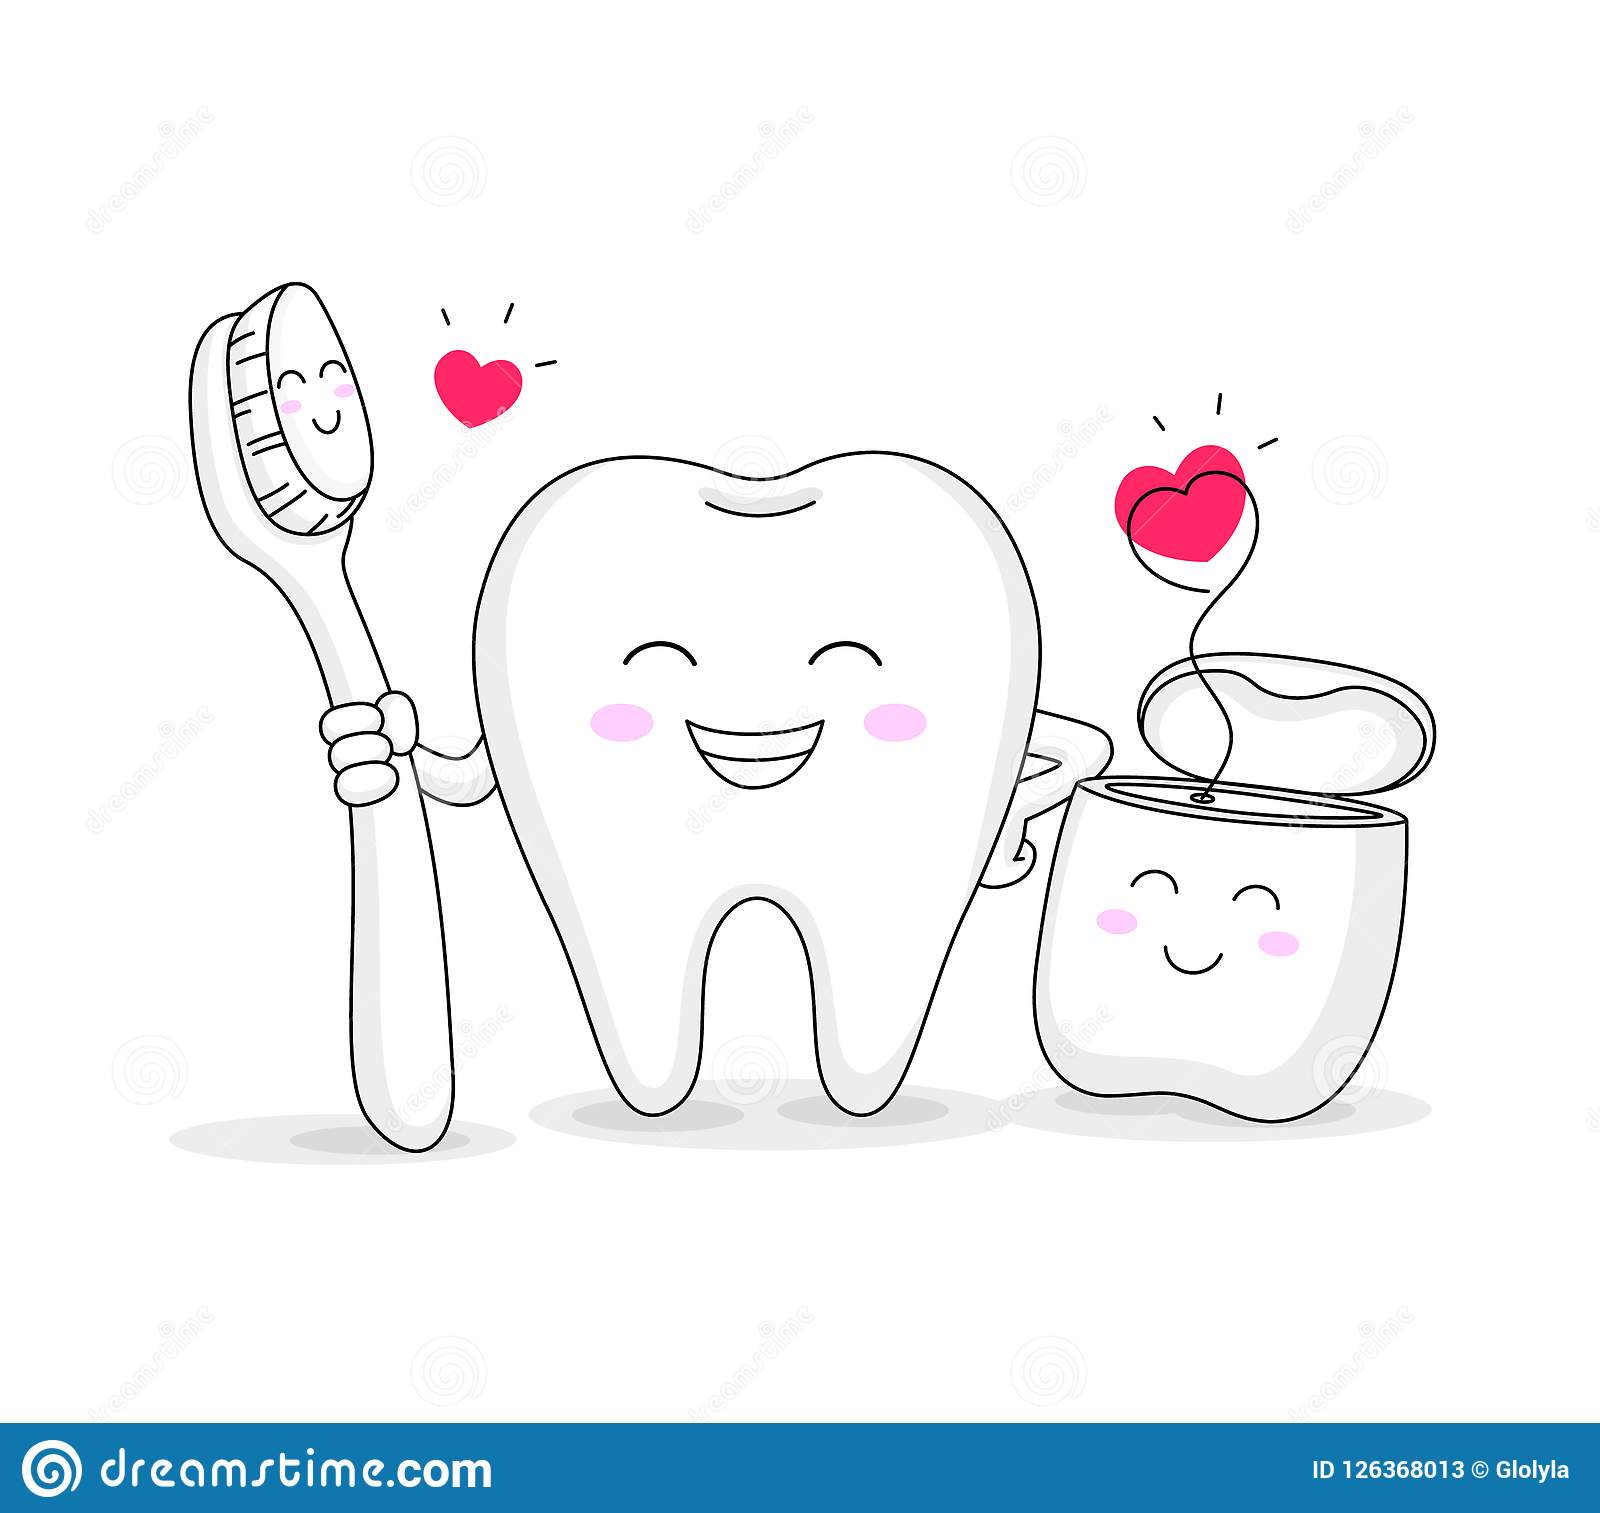 f0a4d7263 Royalty-Free Vector. Cute cartoon tooth character with toothbrush and dental  floss.